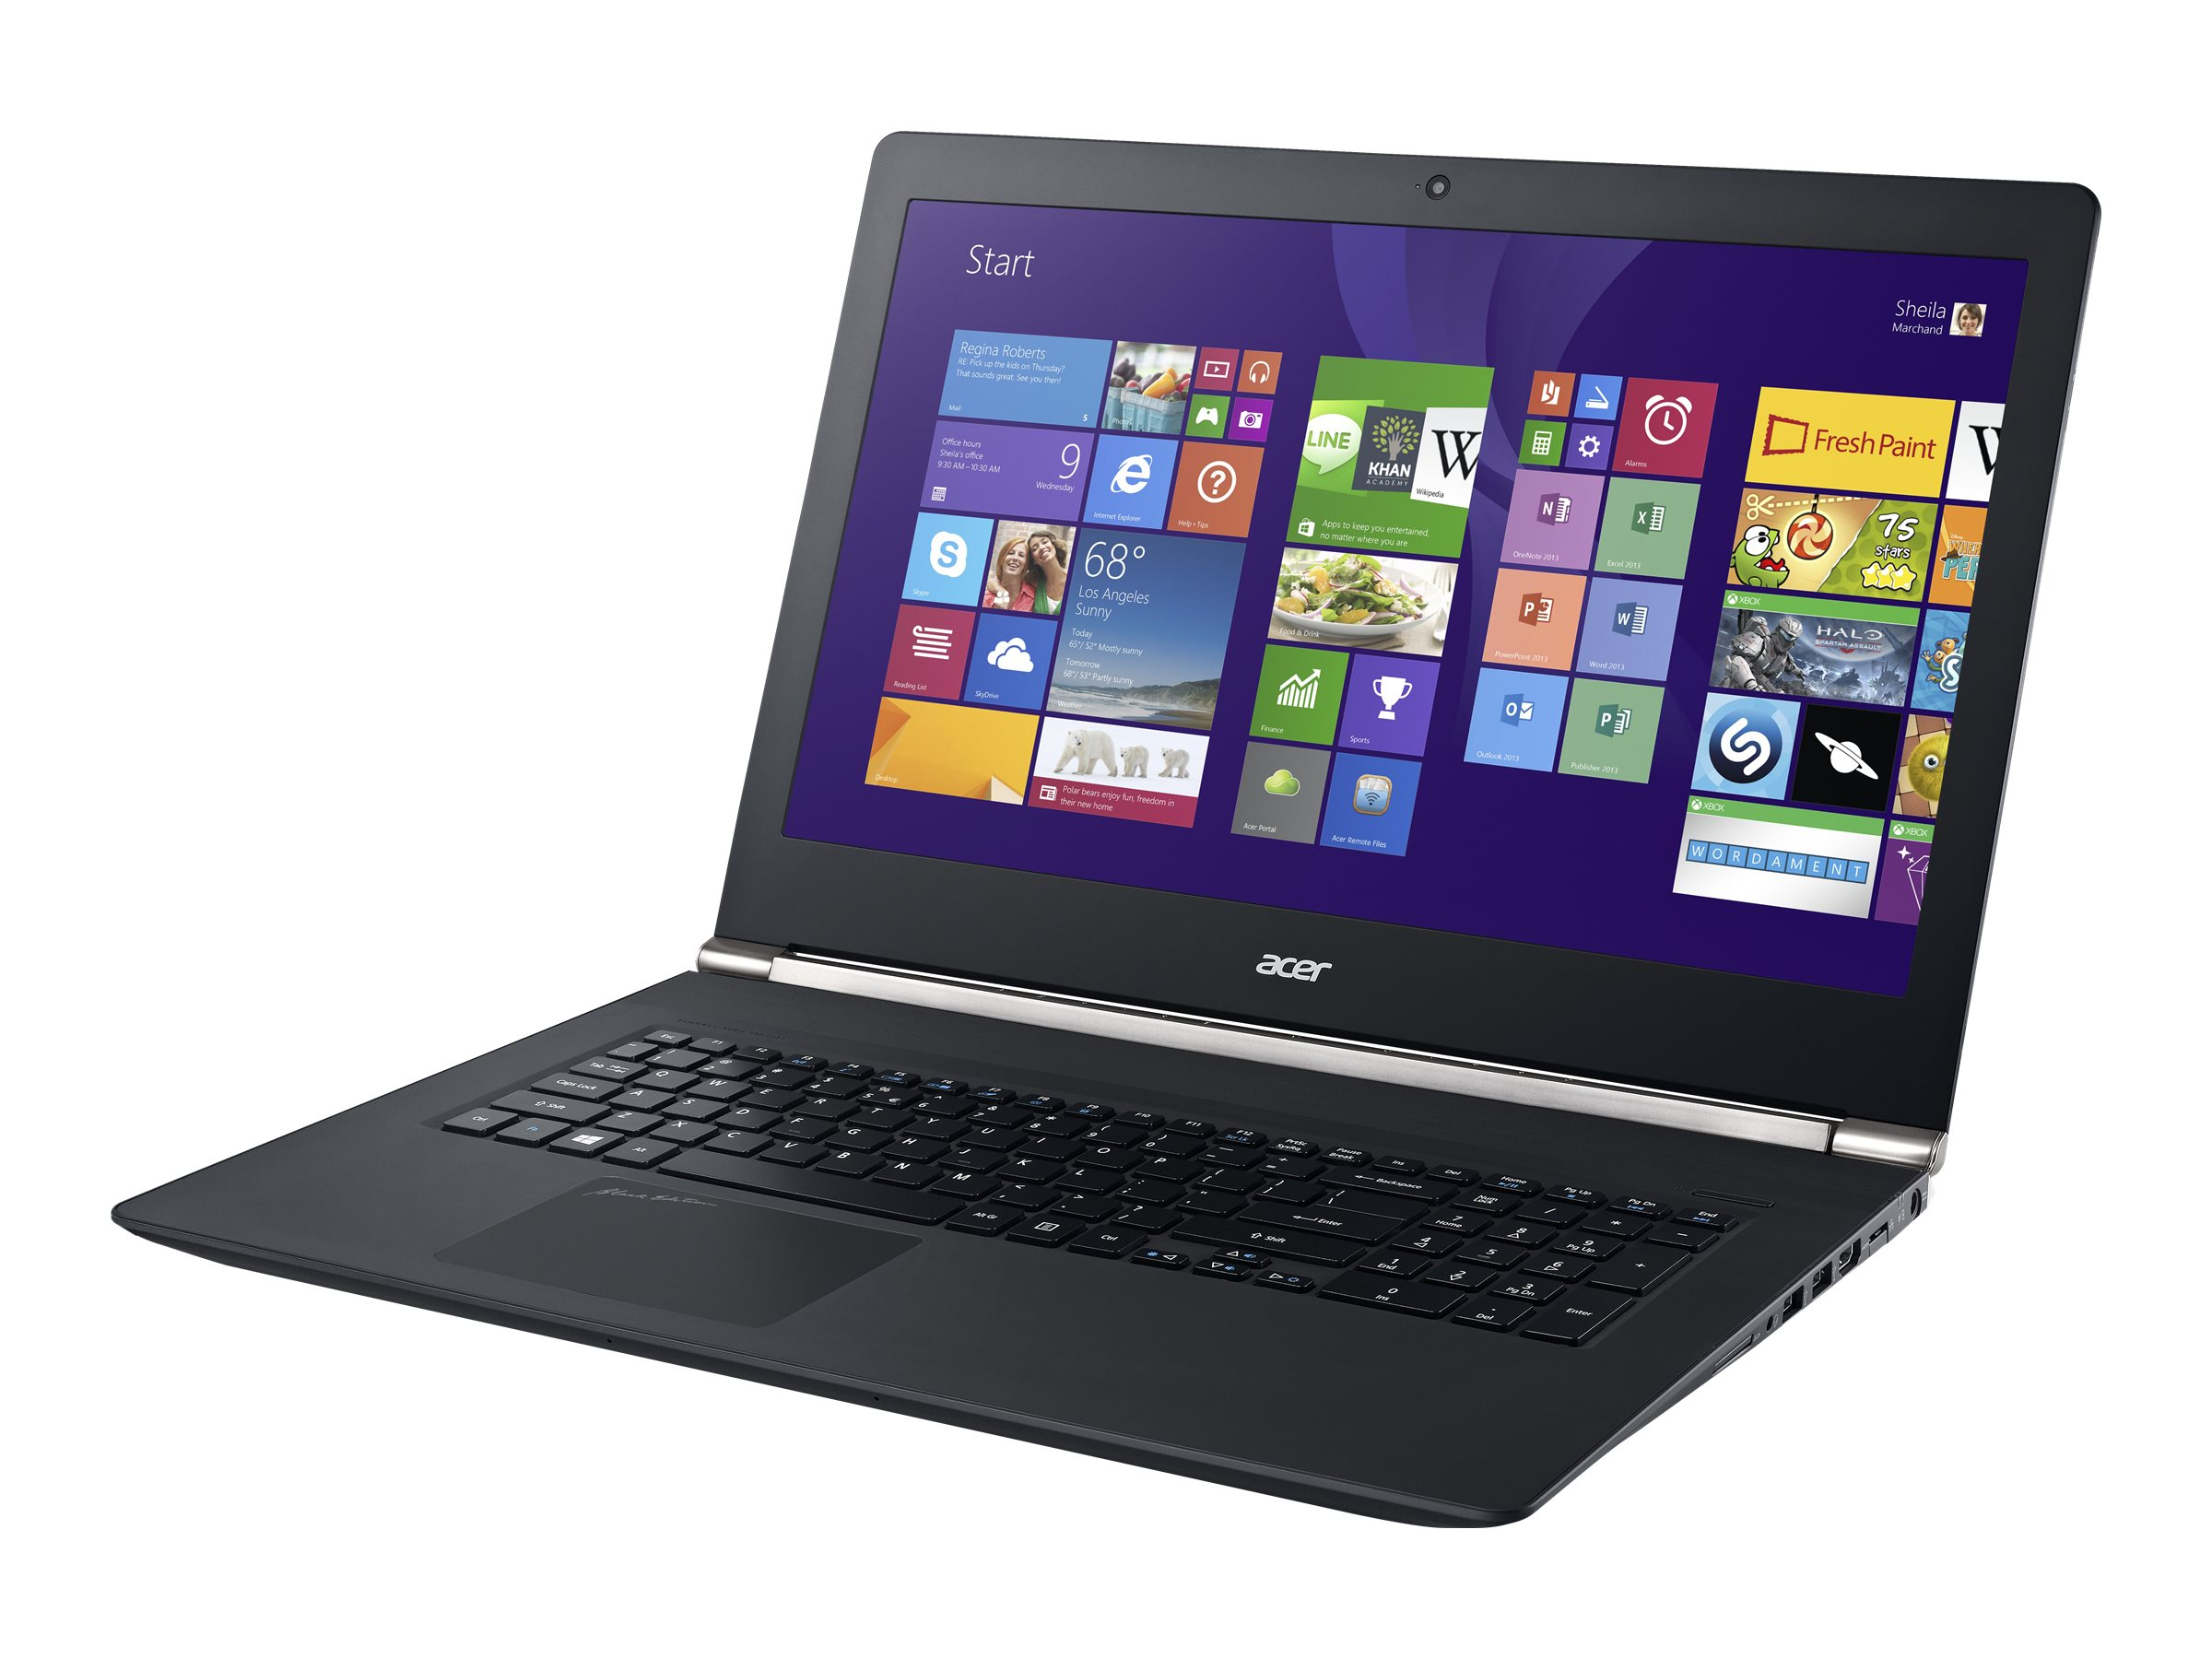 Acer Aspire VN7-591G-72K6 2.6GHz Core i7 15.6in display, NX.MTDAA.004, 18507109, Notebooks